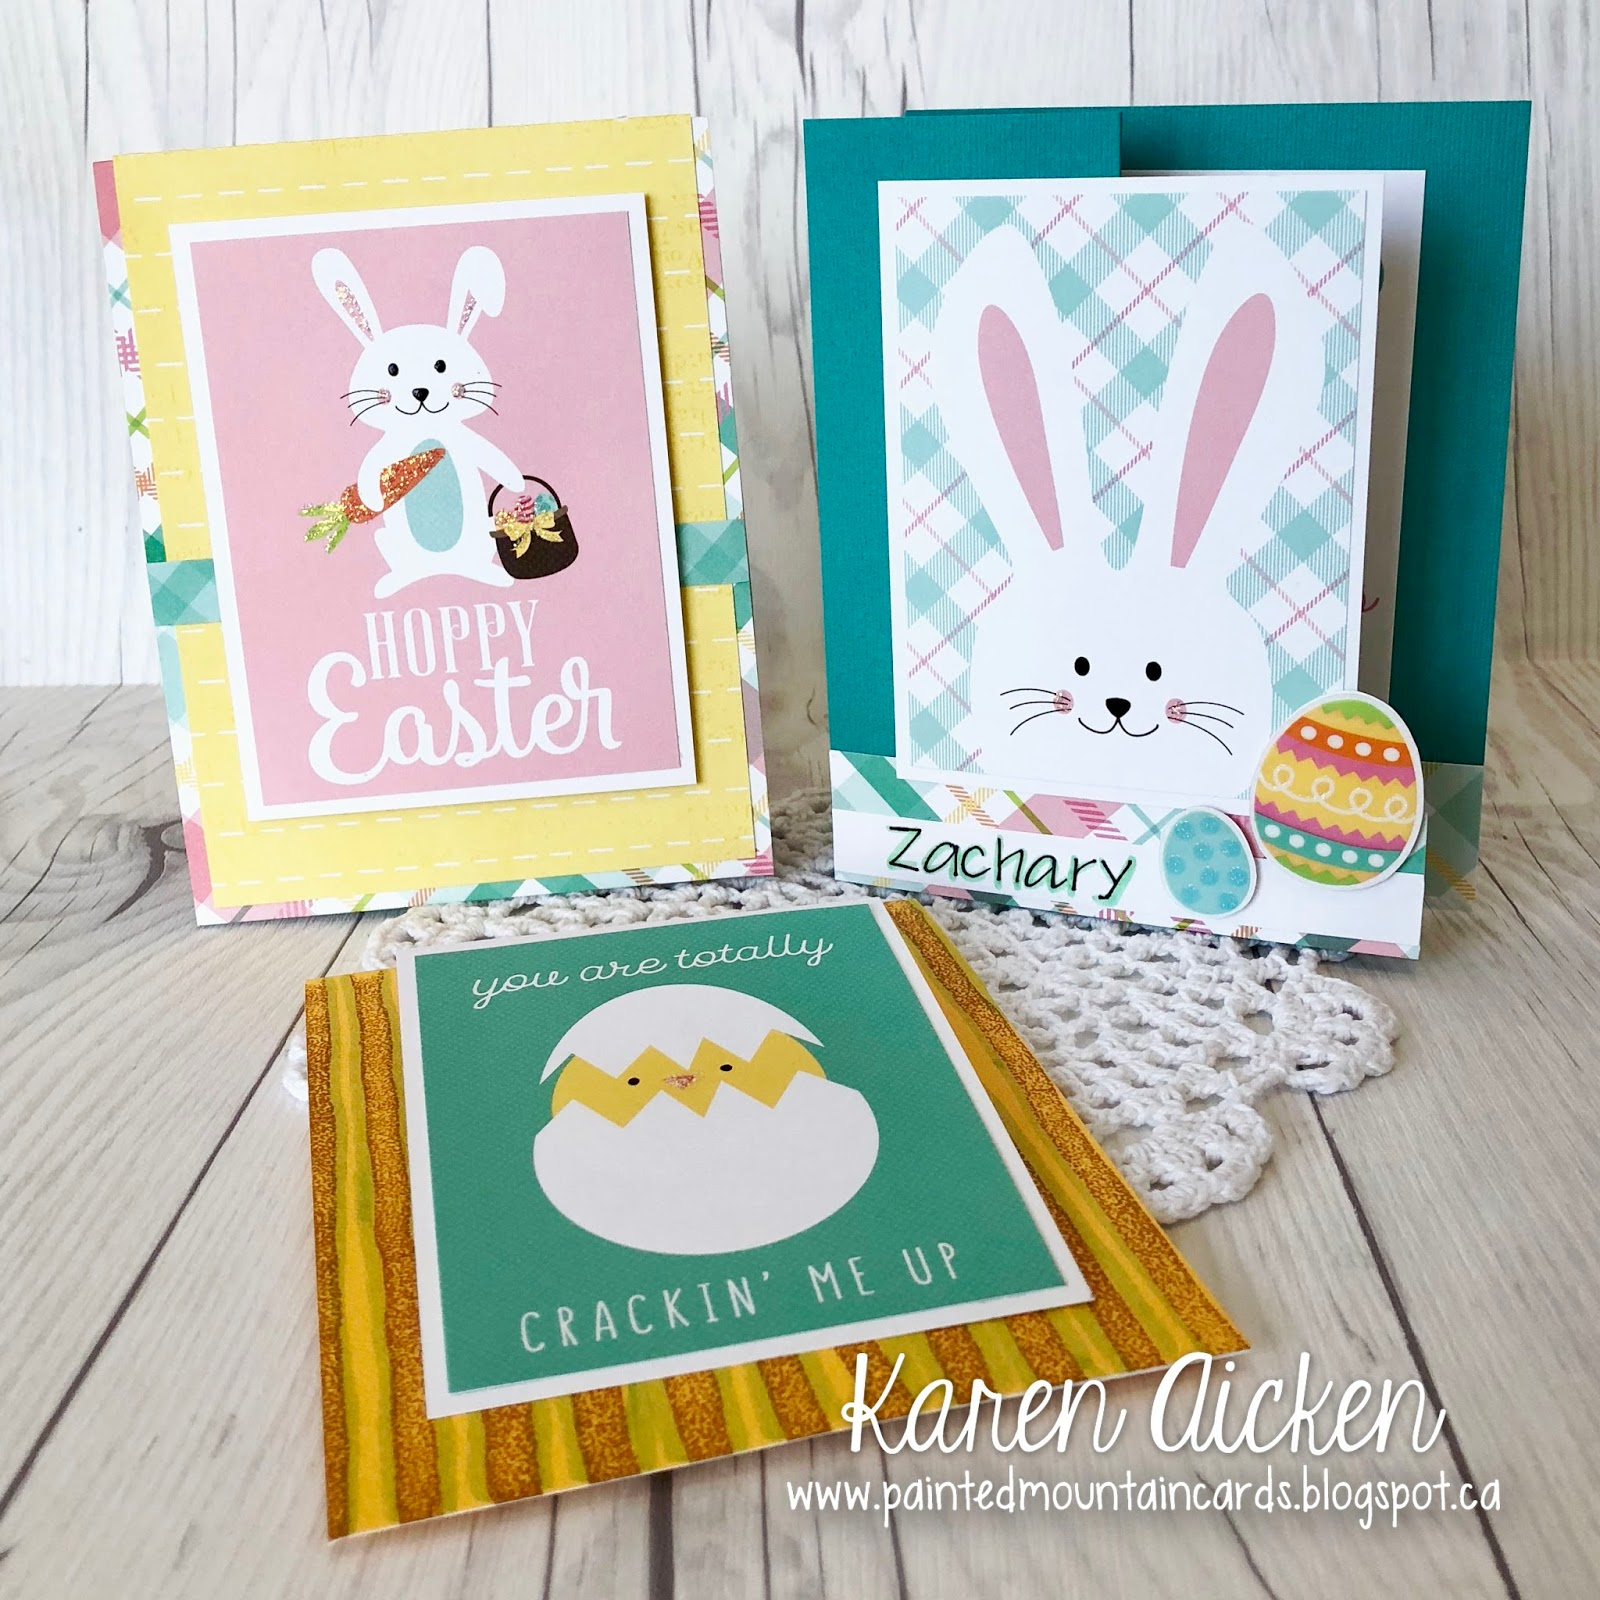 painted mountain cards c4c 427 three kids easter cards